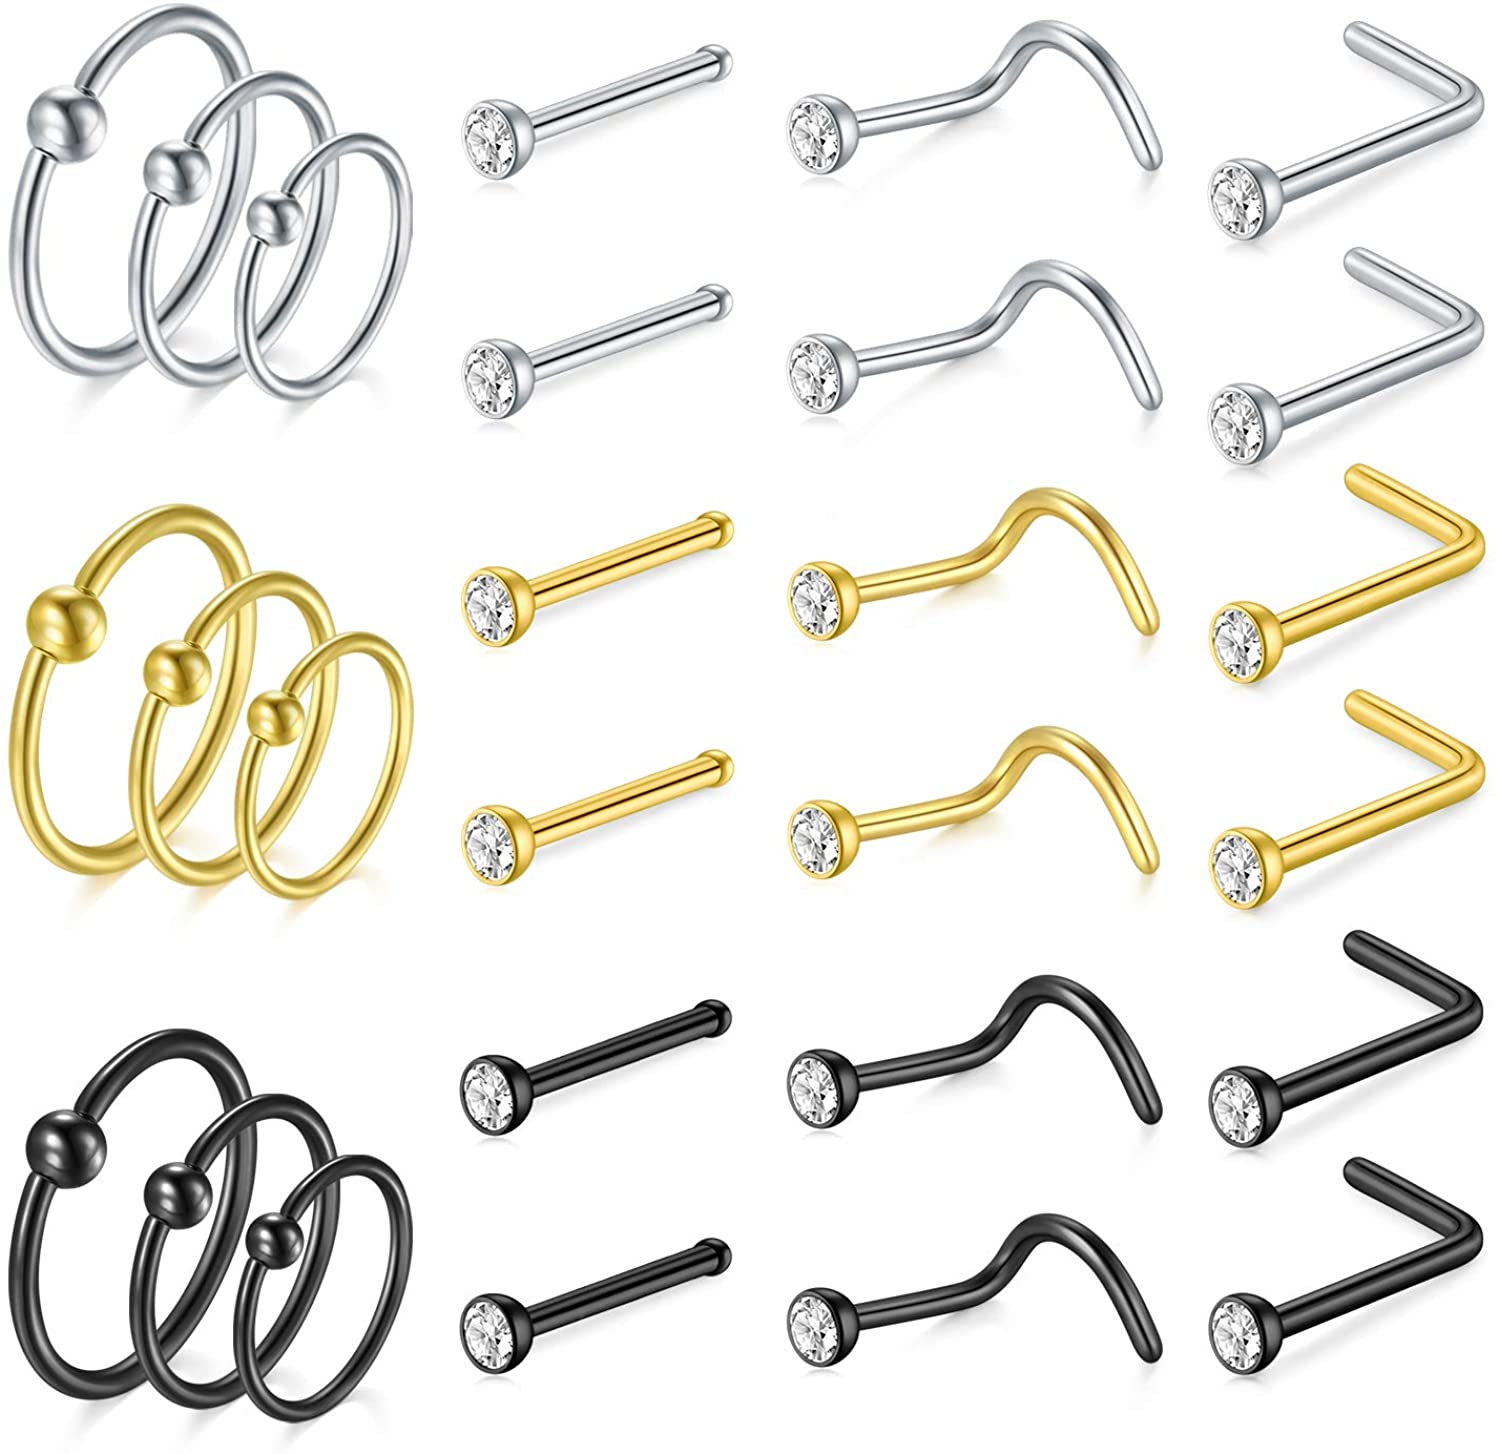 Anicina 22g Nose Rings Hoop Stainless Steel L-Shaped Nose Rings Studs Screw Bone Pin Straight Nostril Piercing Captive Bead Ring Body Piercing Jewelry Set